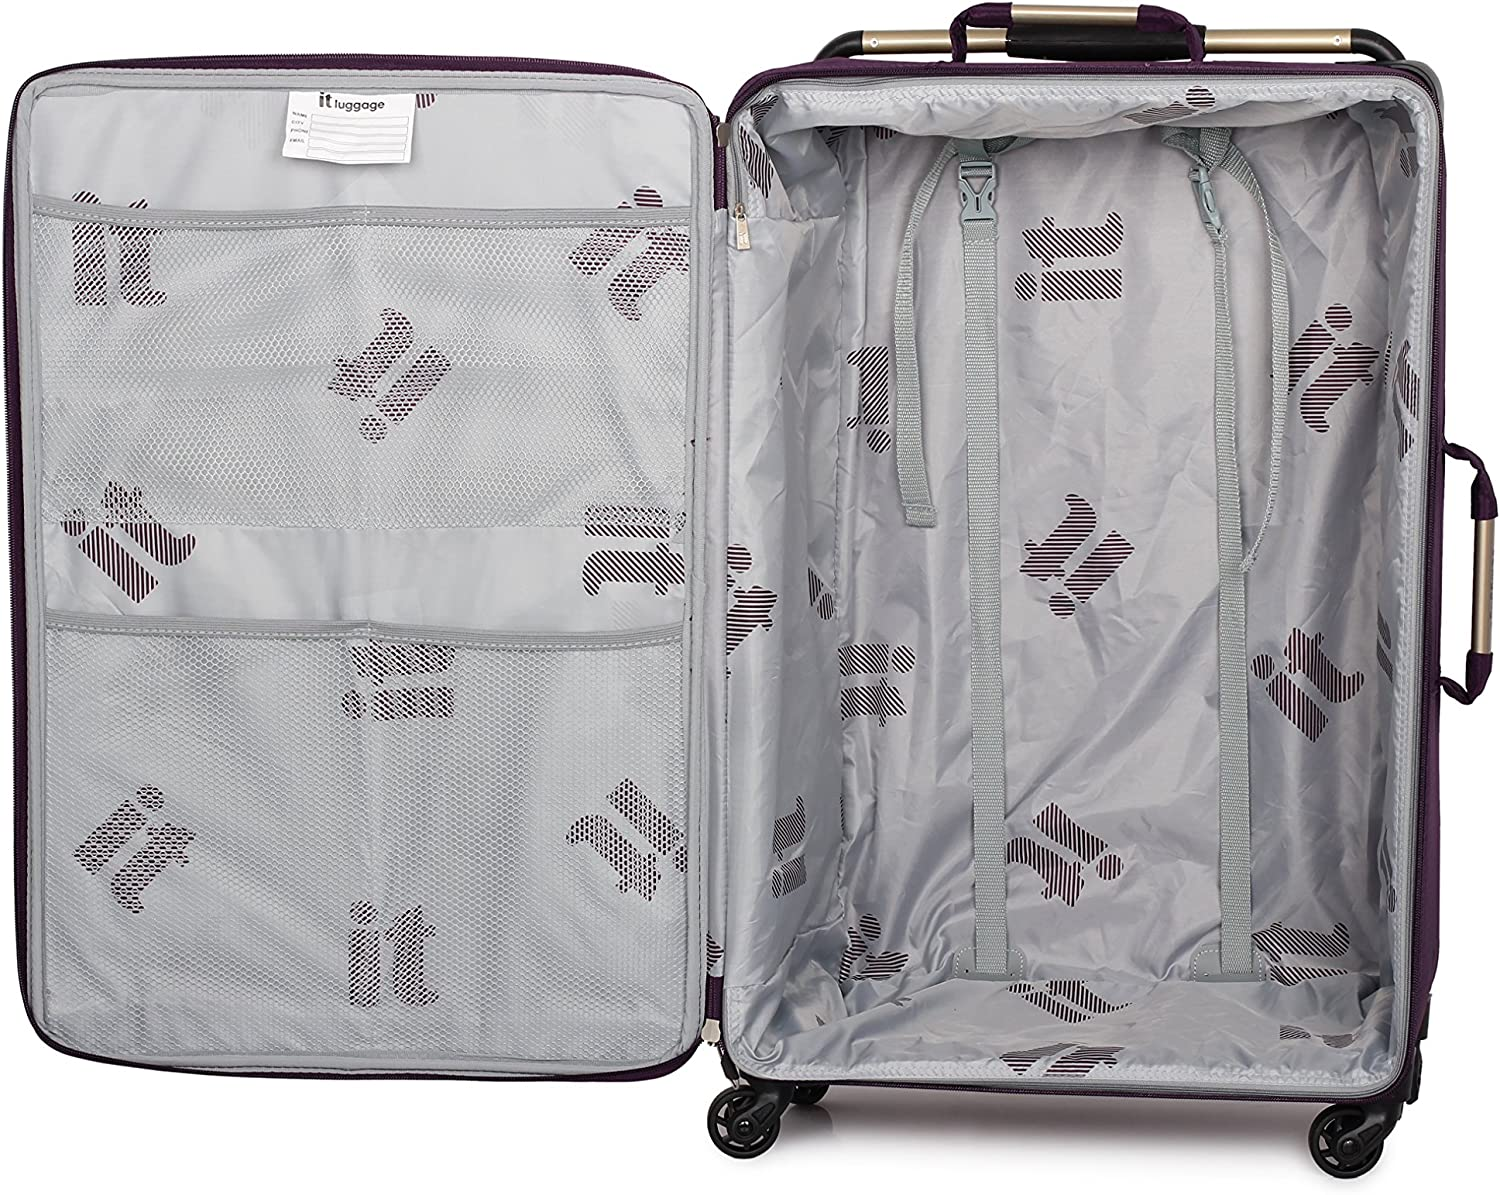 IT Luggage Worlds Lightest Set of 3 Four Wheel Spinner Suitcases Grape Print